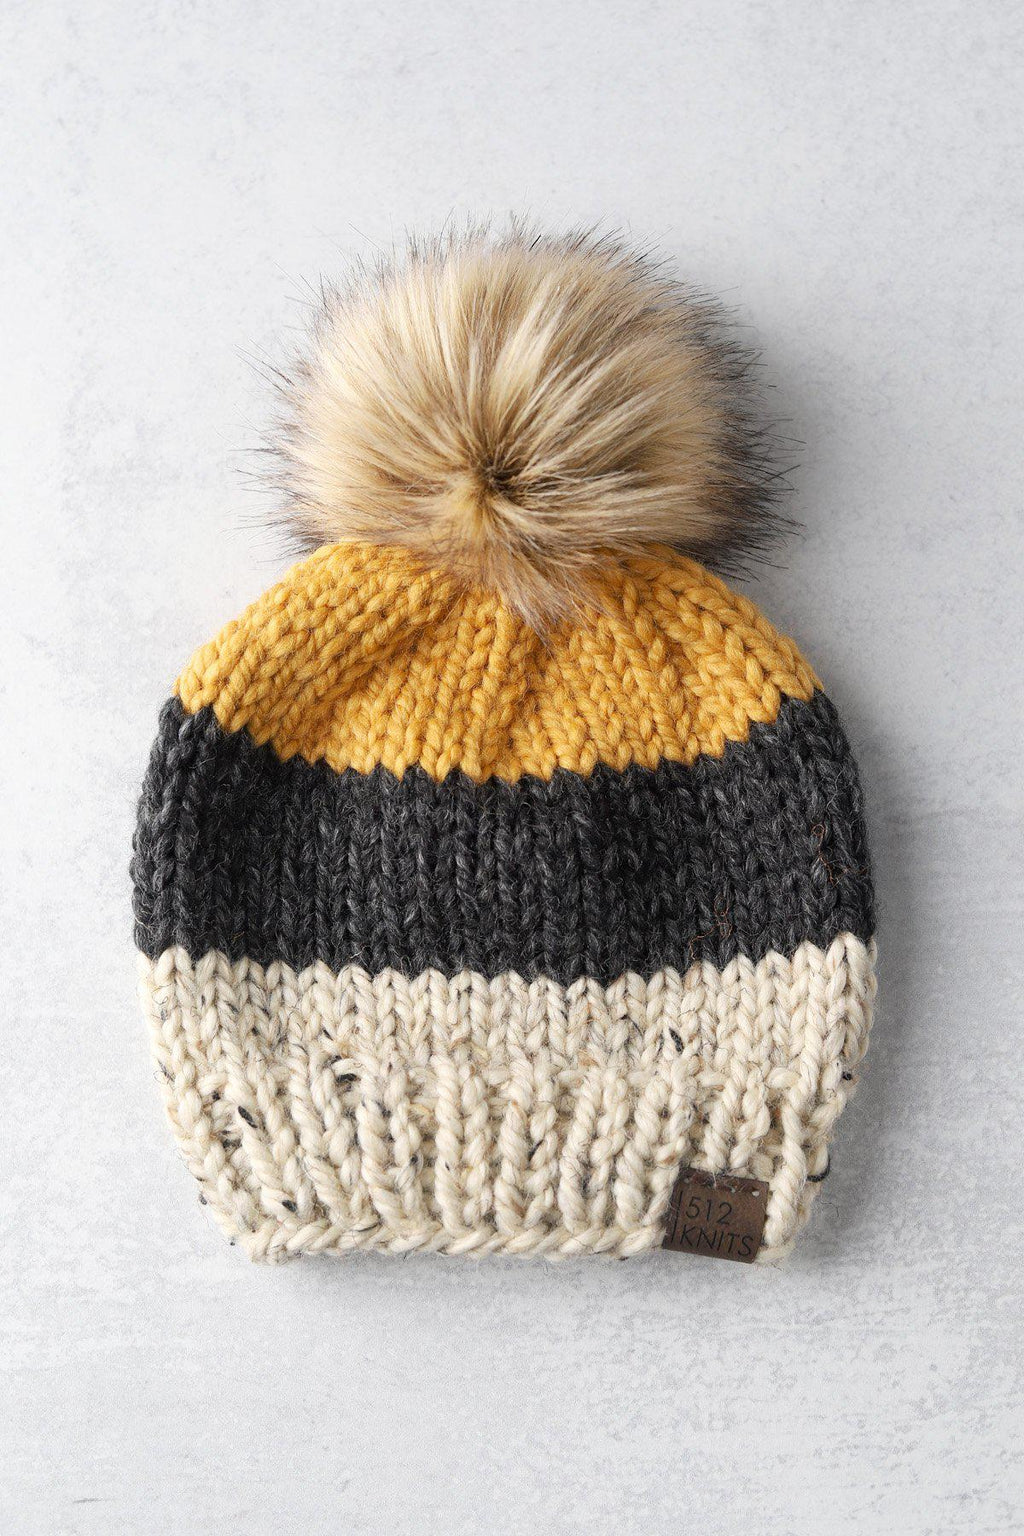 2-5 years Colorblock Pom Beanie - Oatmeal, Grey, Mustard